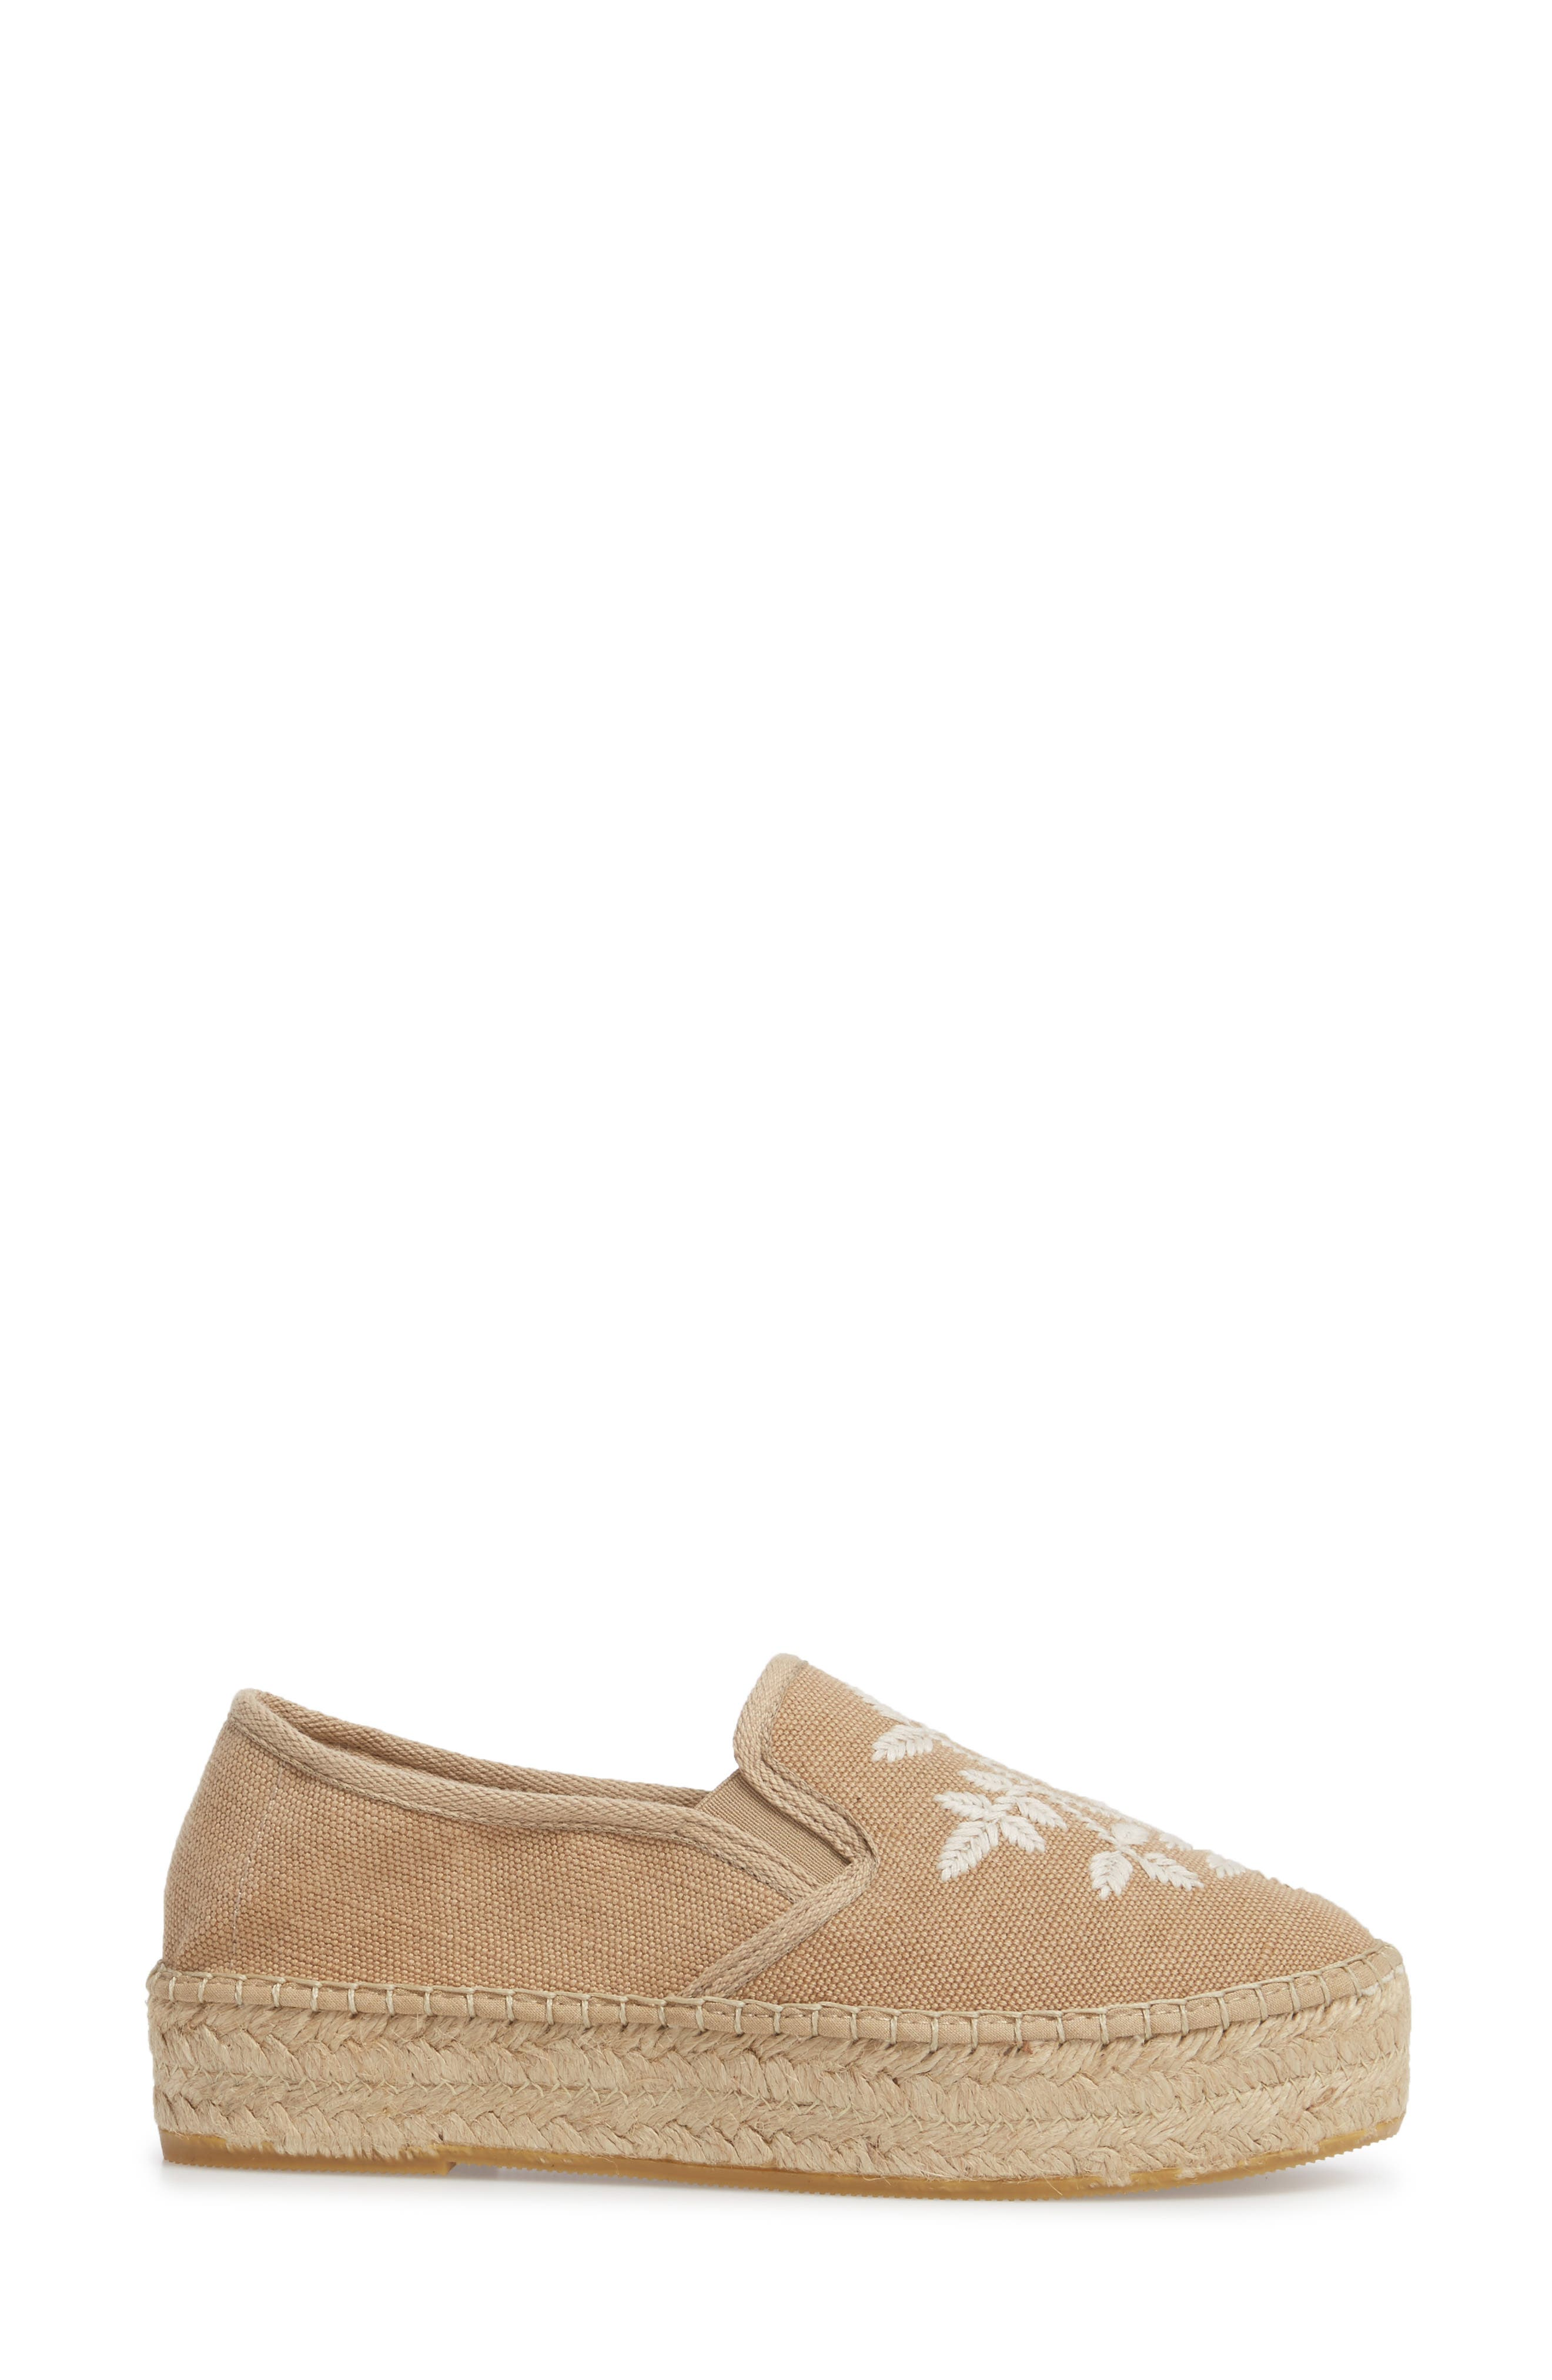 Florence Embroidered Platform Espadrille Sneaker,                             Alternate thumbnail 3, color,                             Tobacco Fabric